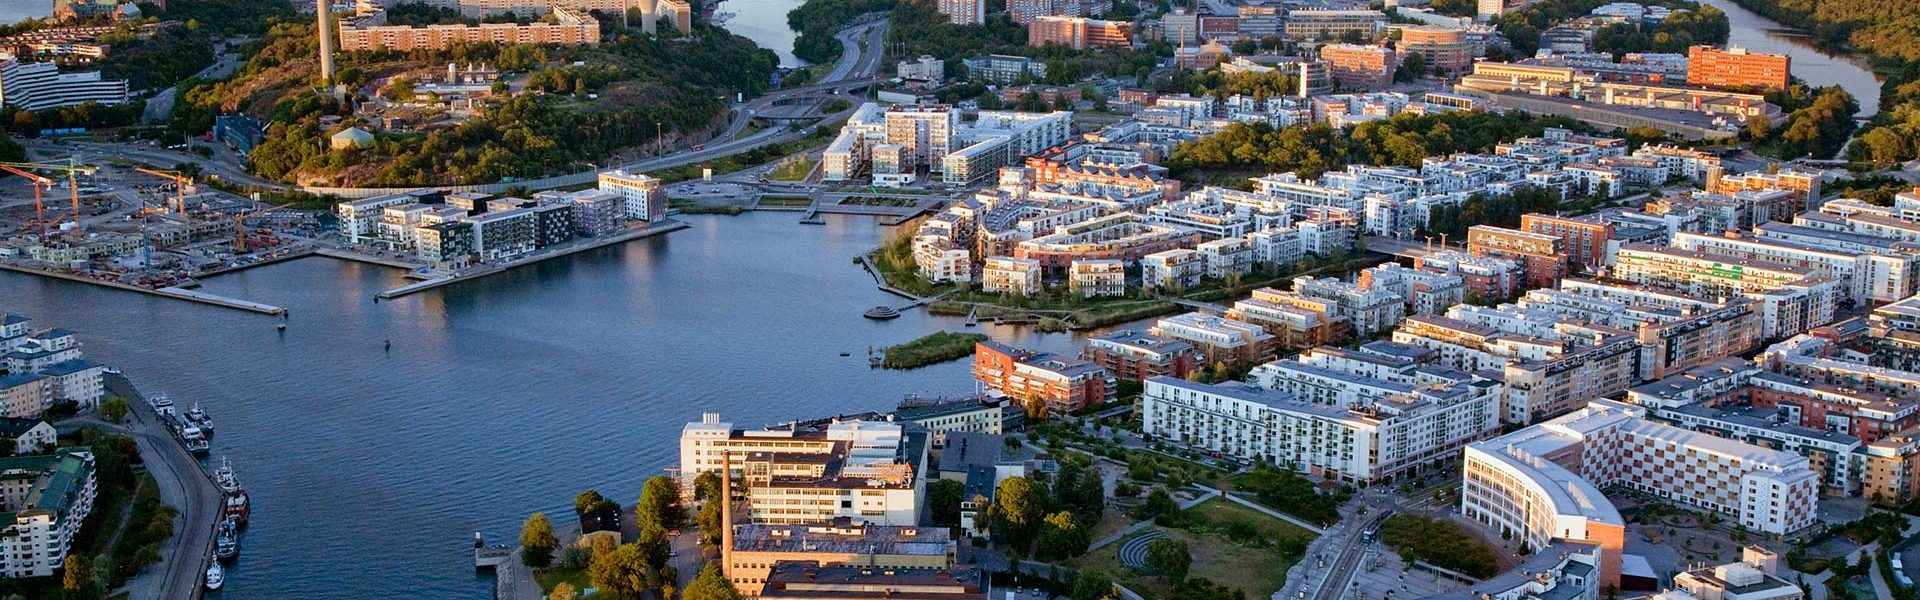 China Sweden Eco City - sustainable urban development